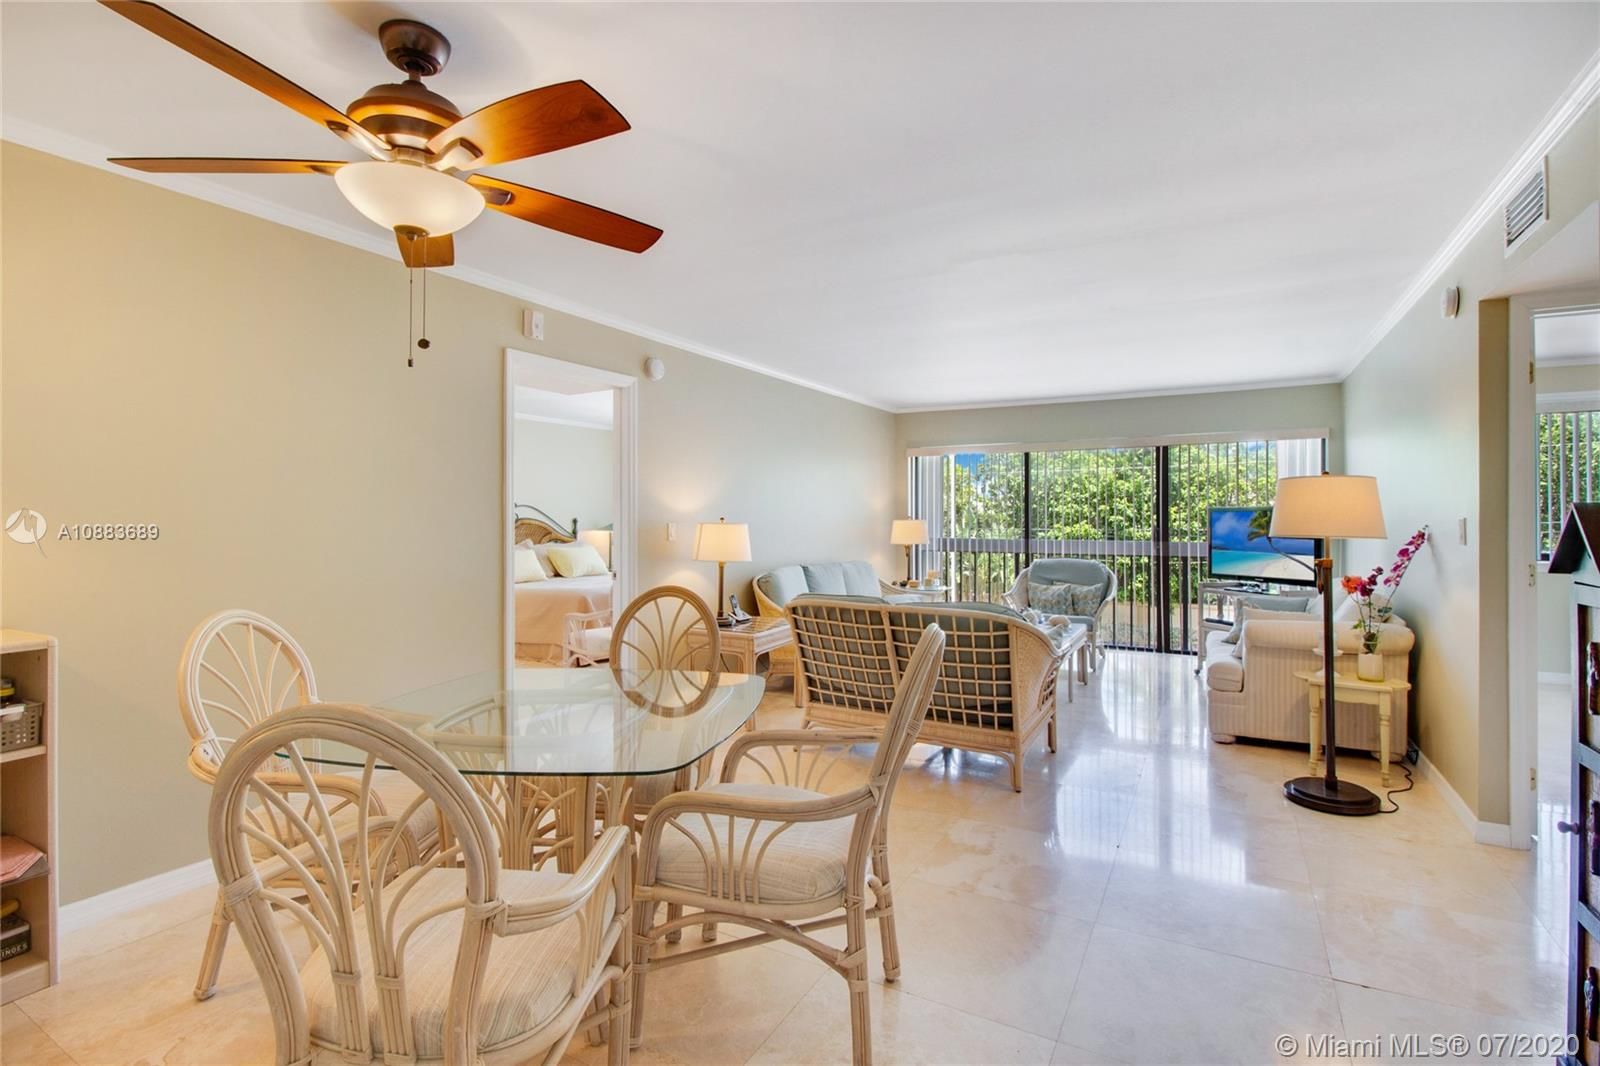 Enjoy the Key Biscayne lifestyle in this completely remodeled bright 2 bed / 2 bath condo with marble floors throughout. Boutique building with low maintenance fees. Plenty of closets. Washer and dryer inside unit,  2 parking spaces, and additional storage.  Very close to the beach, restaurants, market, park, shops, and community center. Enjoy this cozy place you will call home! Easy to show.